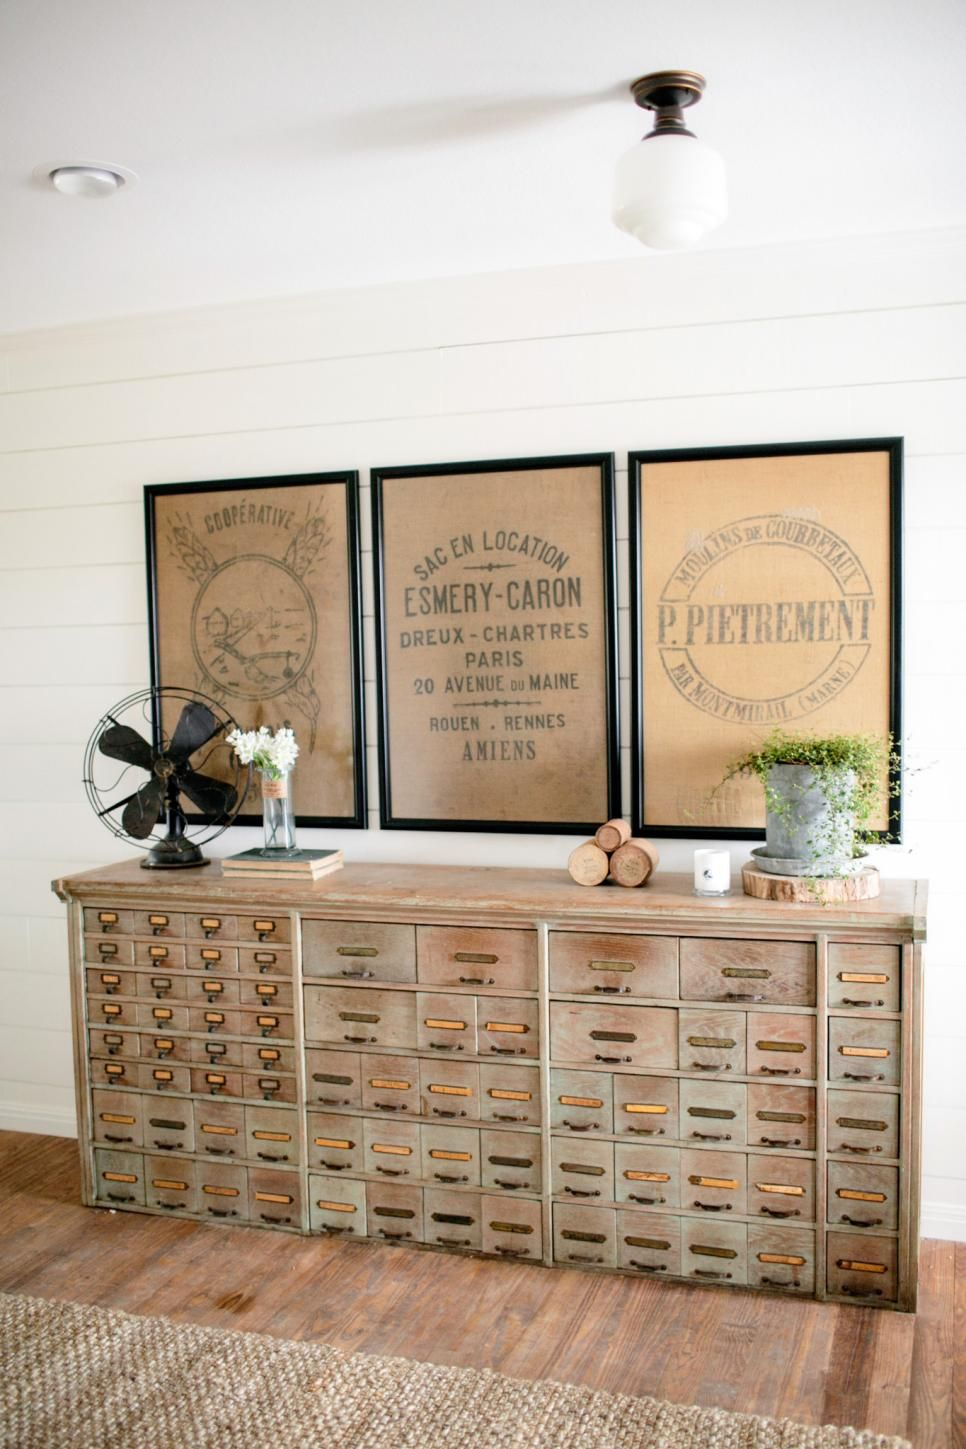 Get Joanna Gaines Flea Market Style With Thrifty Shopping Tips